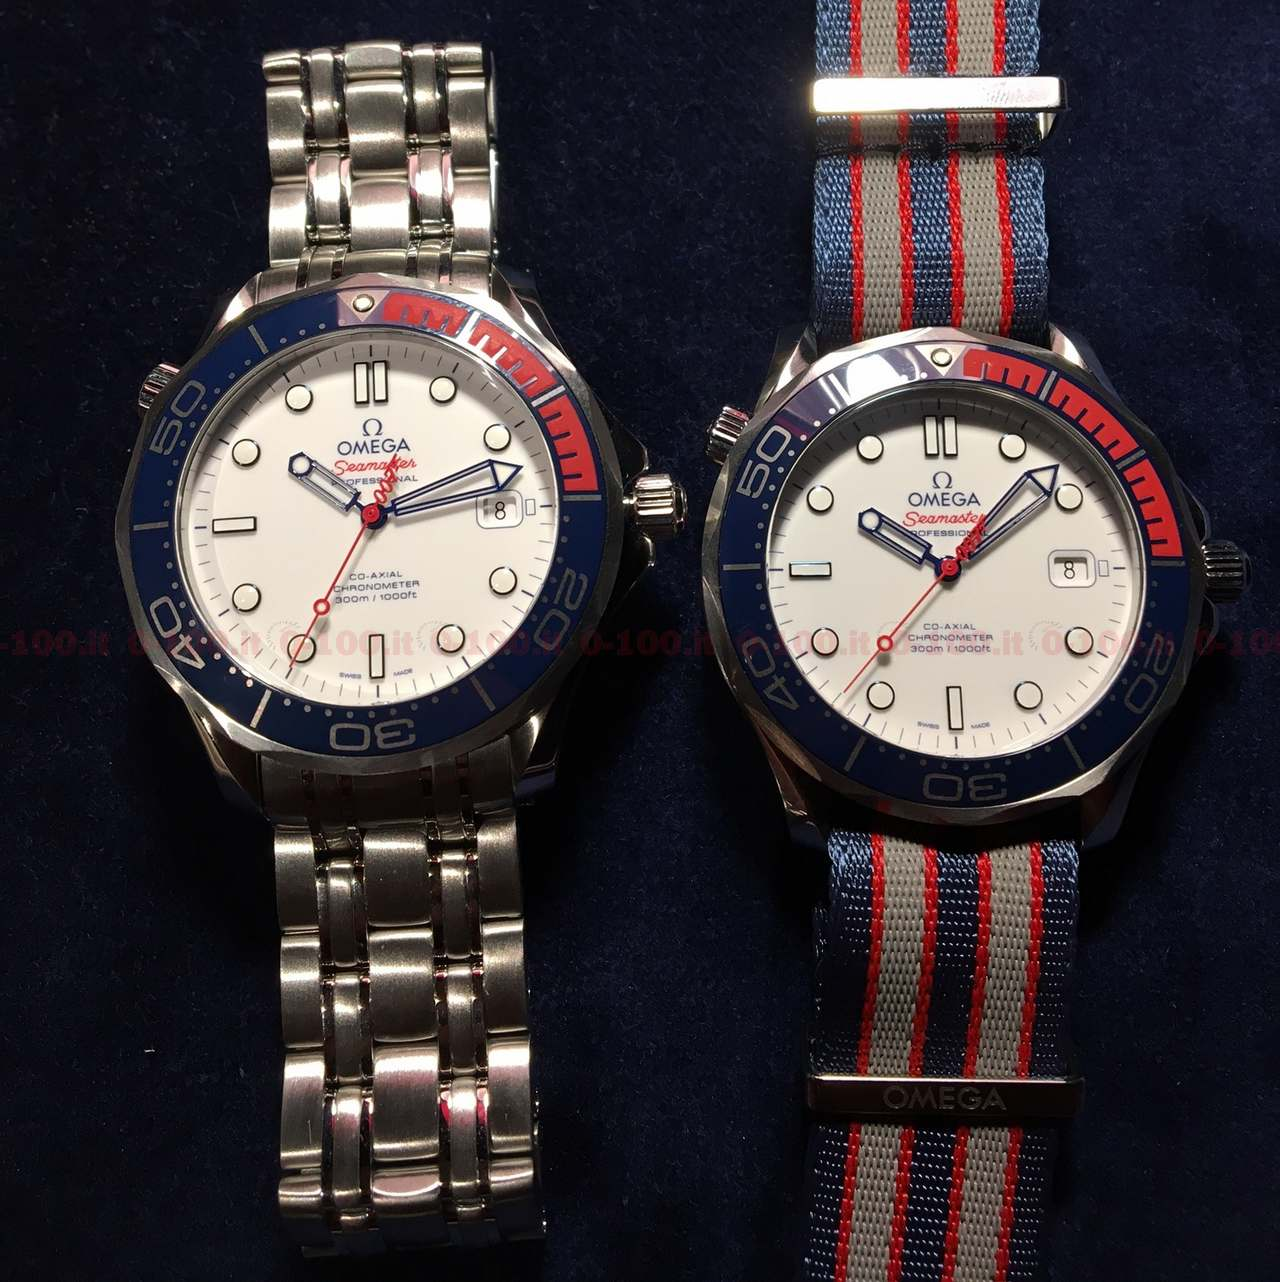 Omega Seamaster Diver 300M Commander's Watch Limited Edition_0-1002